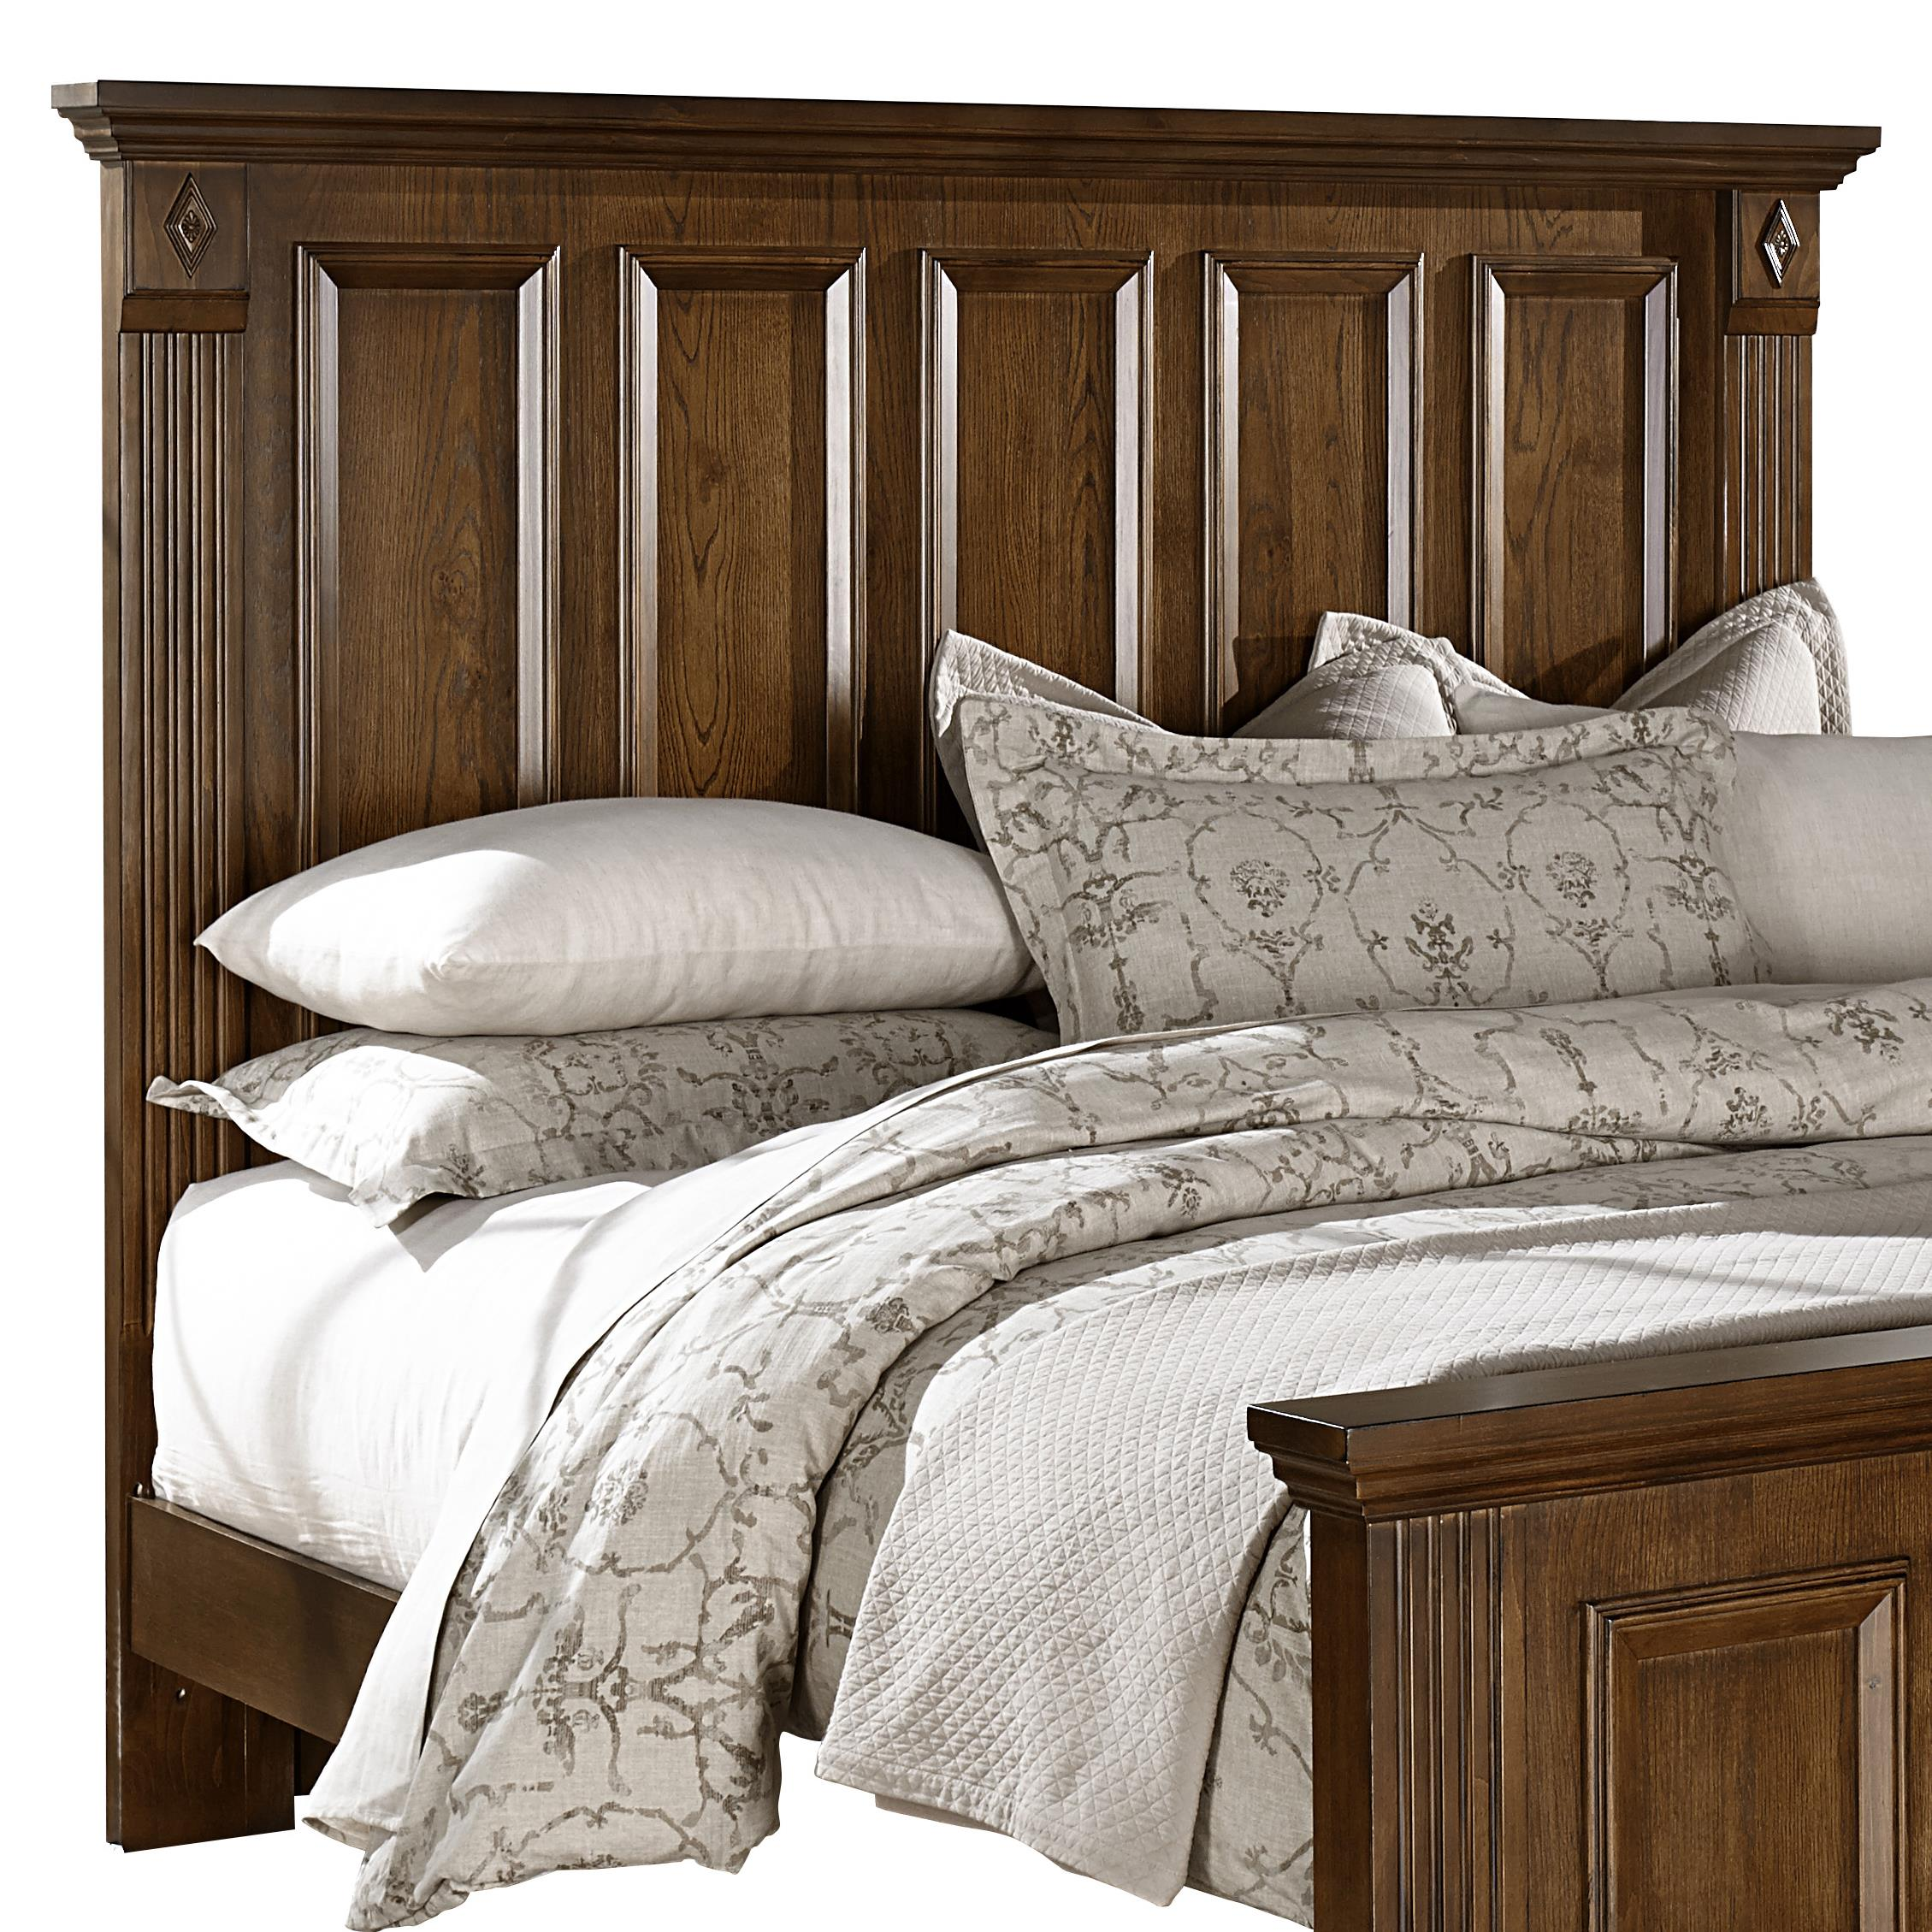 Vaughan Bassett Woodlands BB97 669 King Mansion Headboard